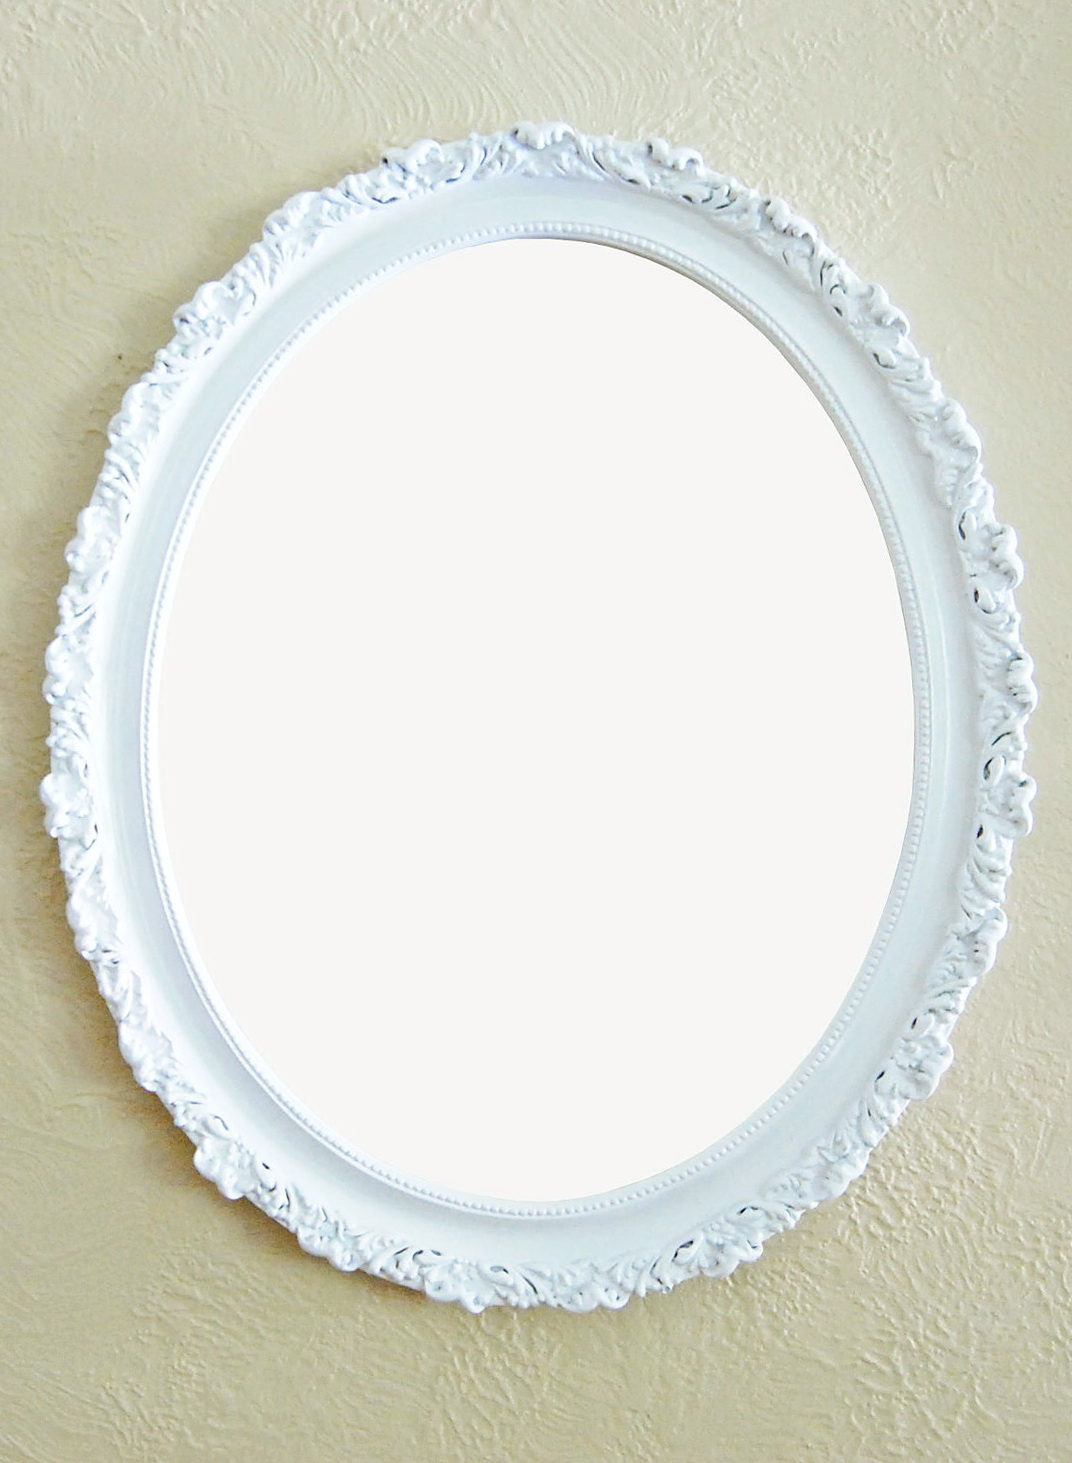 Oval mirror white frame